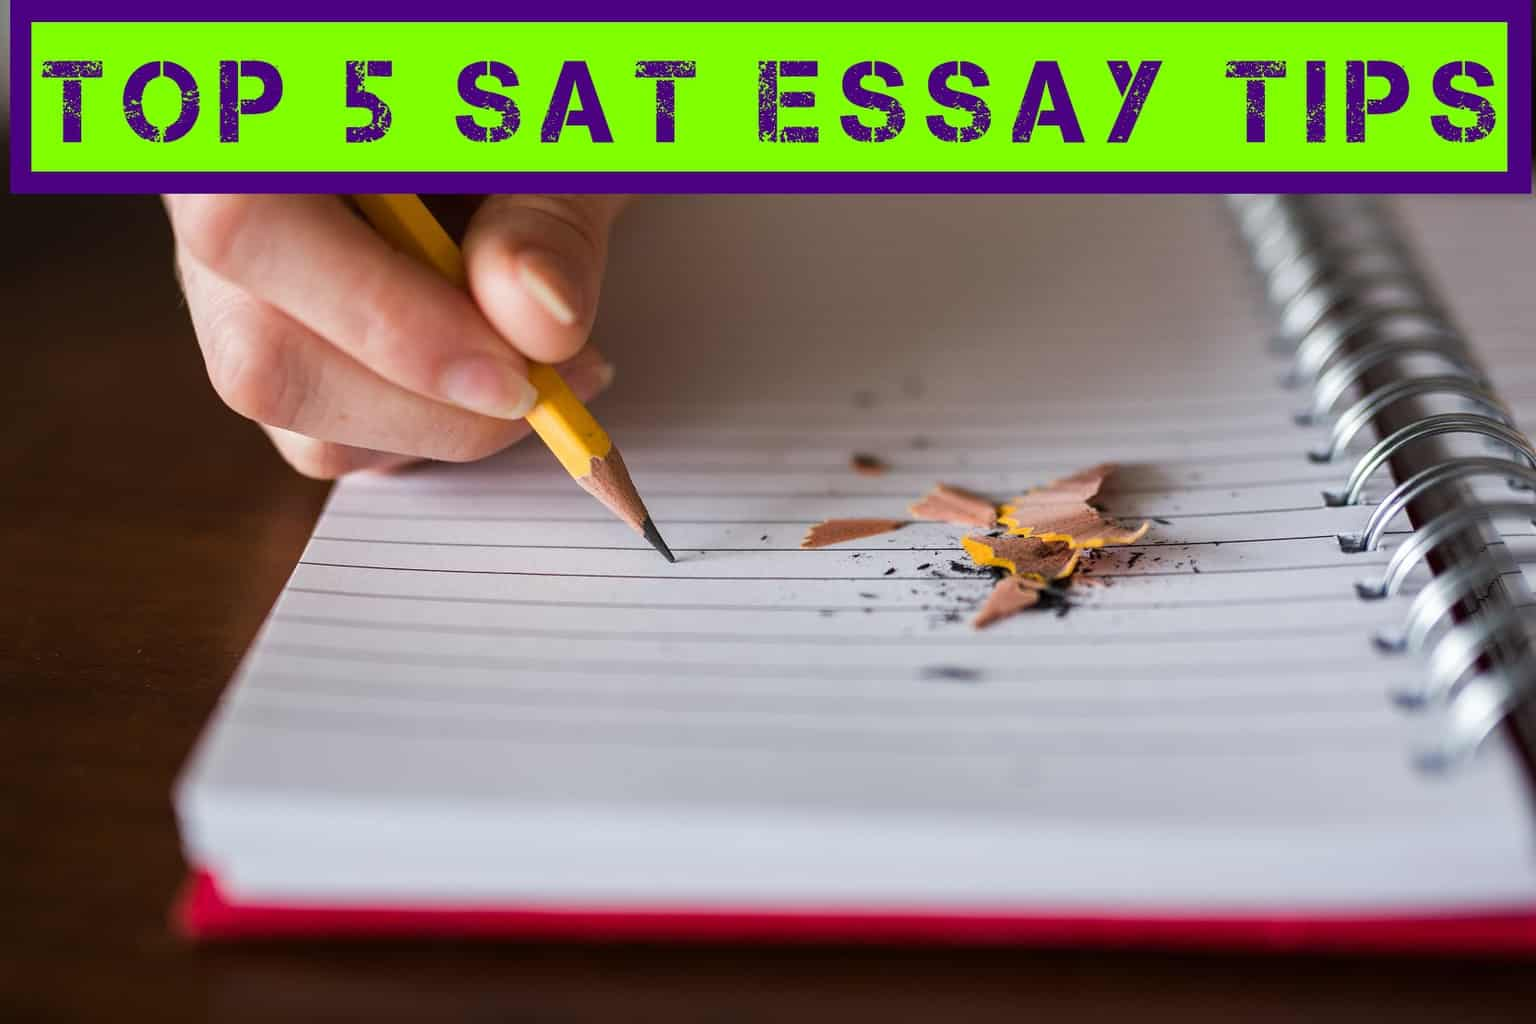 sat prep essay help Now i've created prep expert – the only test prep company created by a student who went from an average sat score to a perfect one we offer the highest average score improvement, the best instructors, and double the course hours at half the price.